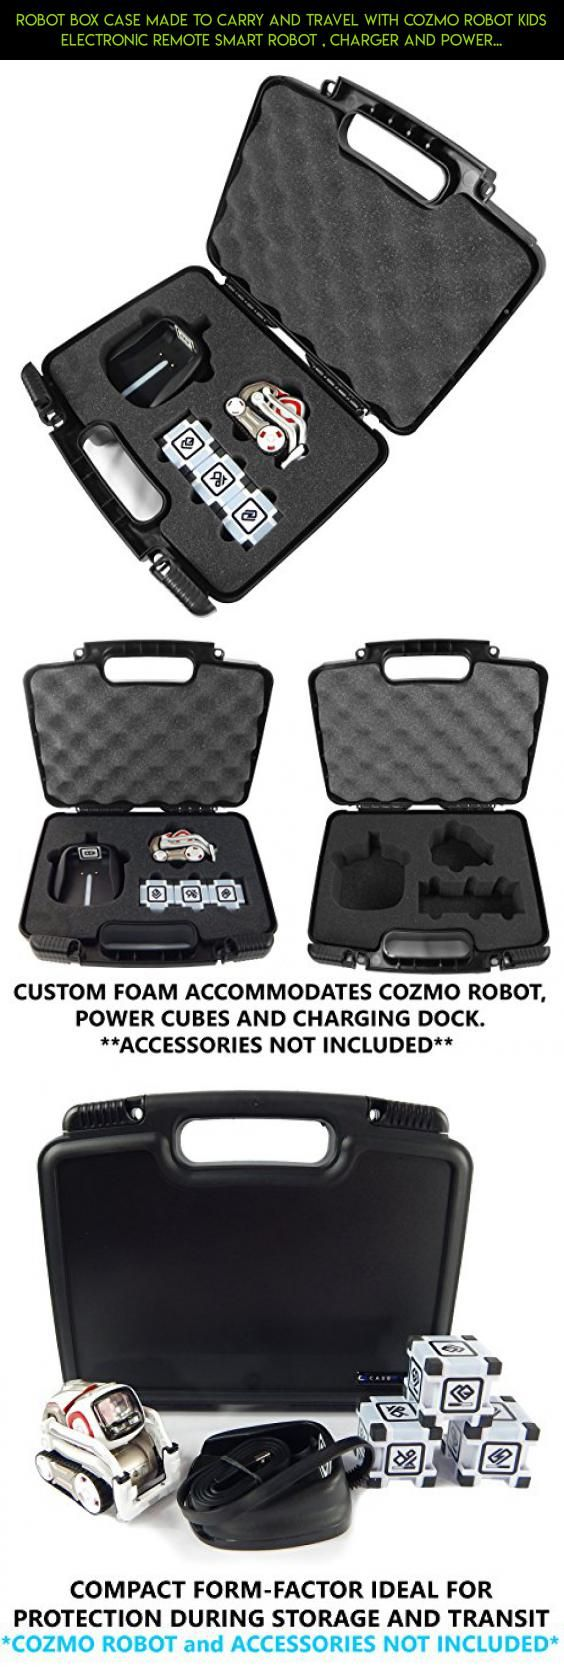 Robot Box Case Made to Carry and Travel With Cozmo Robot Kids Electronic Remote Smart Robot , Charger and Power Cubes #camera #fpv #handle #drone #shopping #products #tech #parts #racing #gadgets #kit #plans #technology #case #cozmo #with